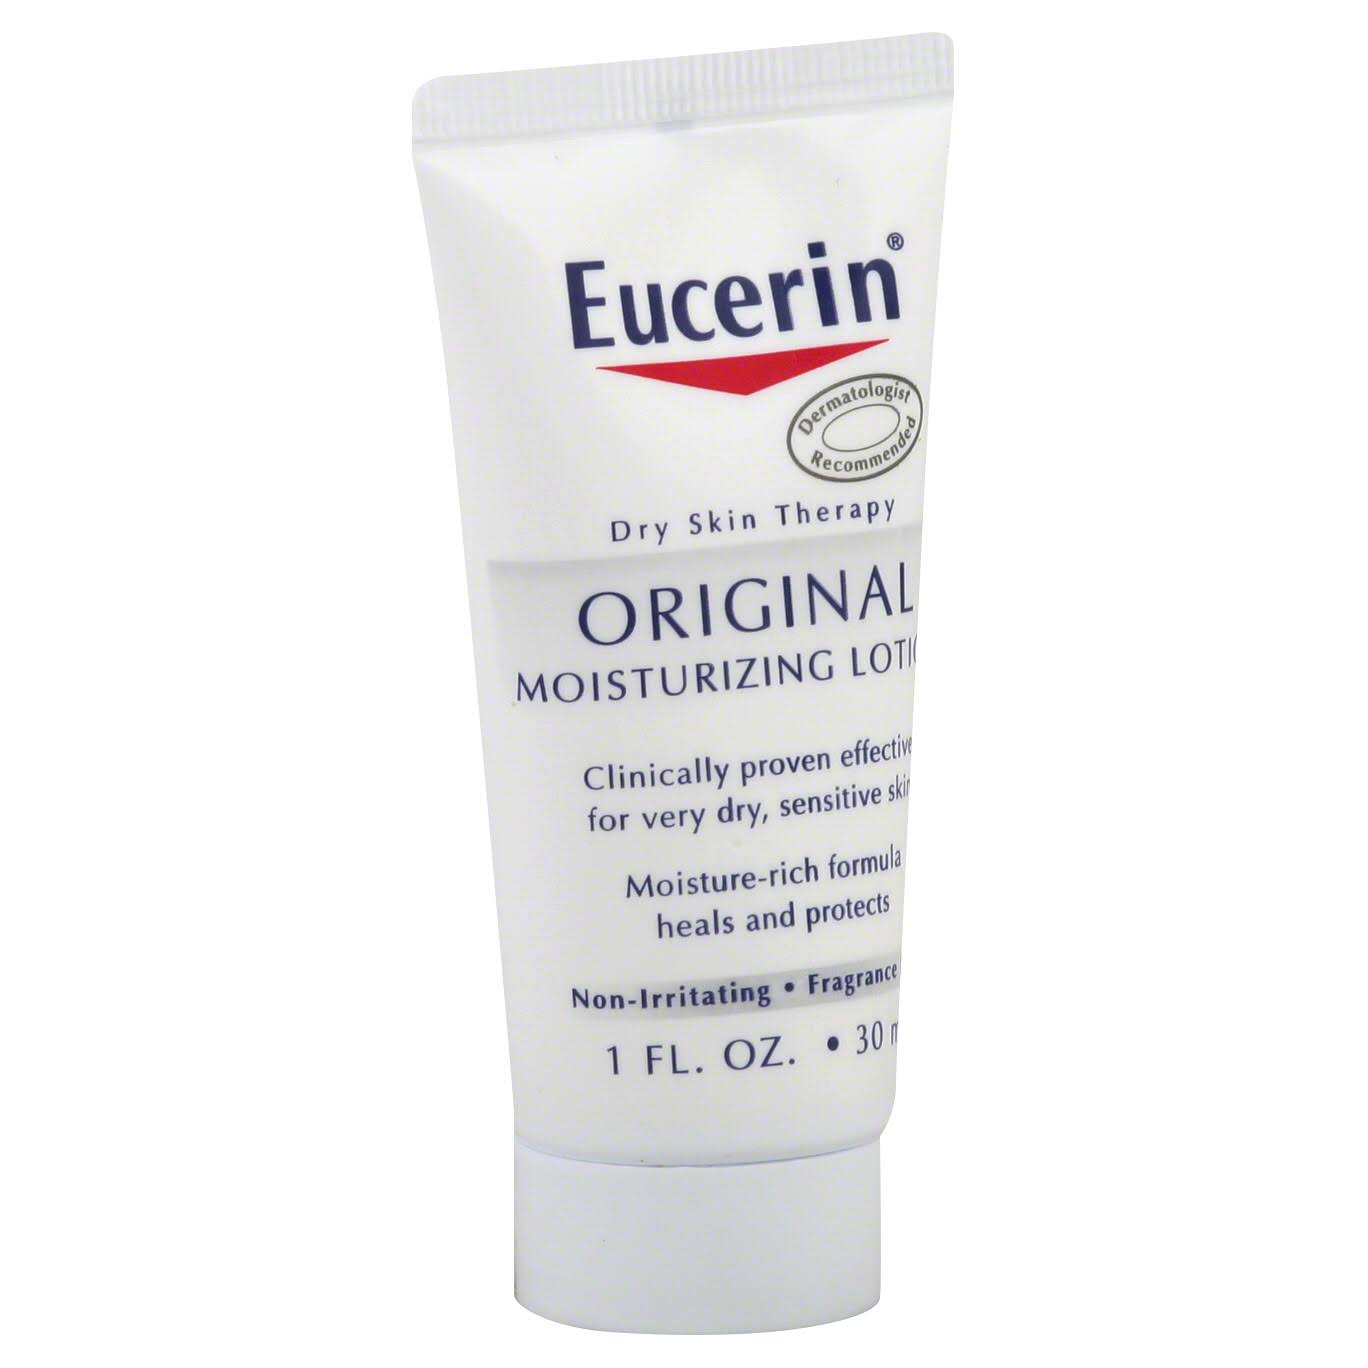 Eucerin Original Moisturizing Lotion - 1 oz tube